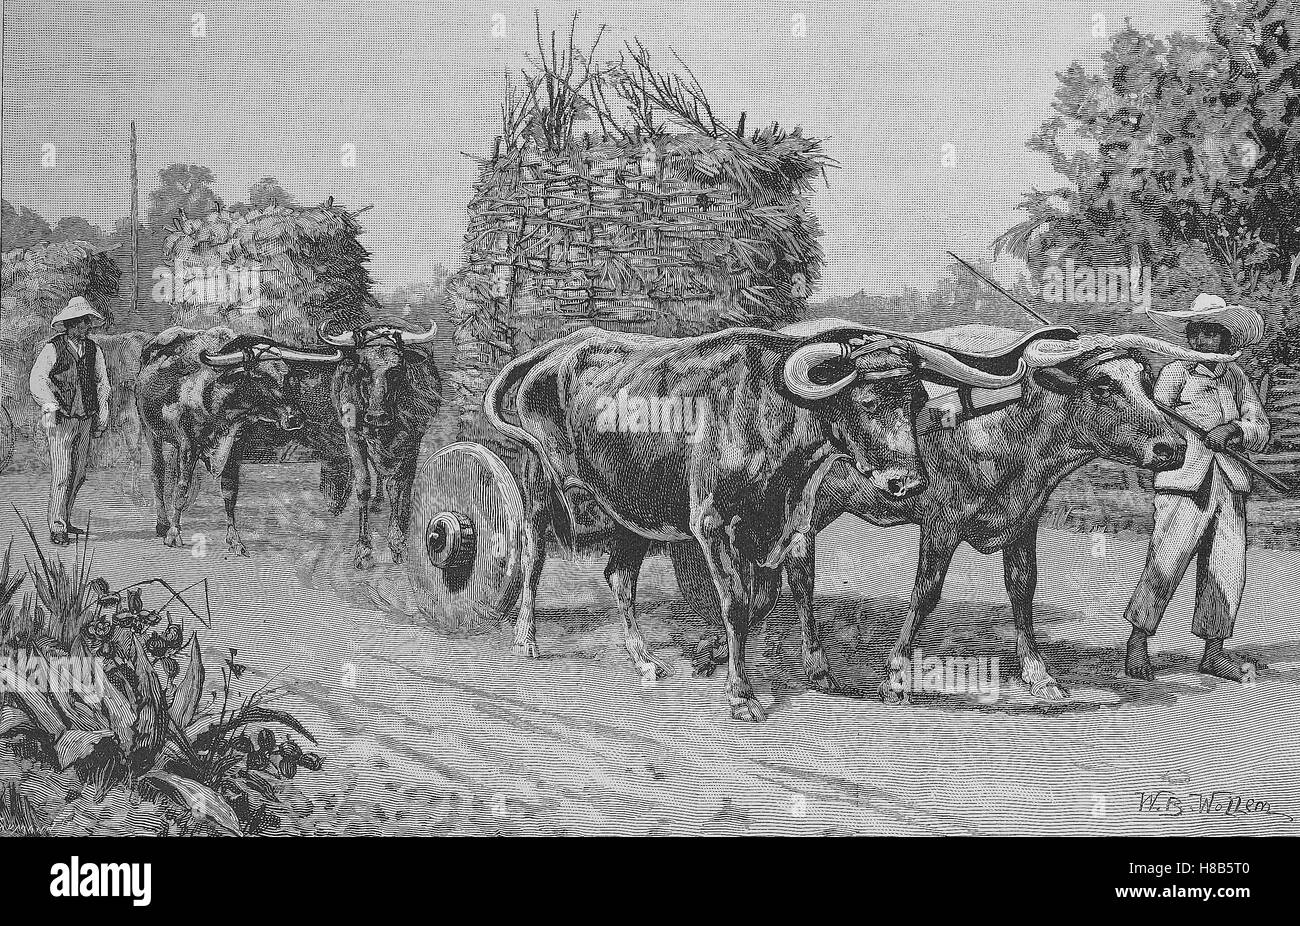 Peasant cart pulled by cattle in Chile, Woodcut from 1892 - Stock Image